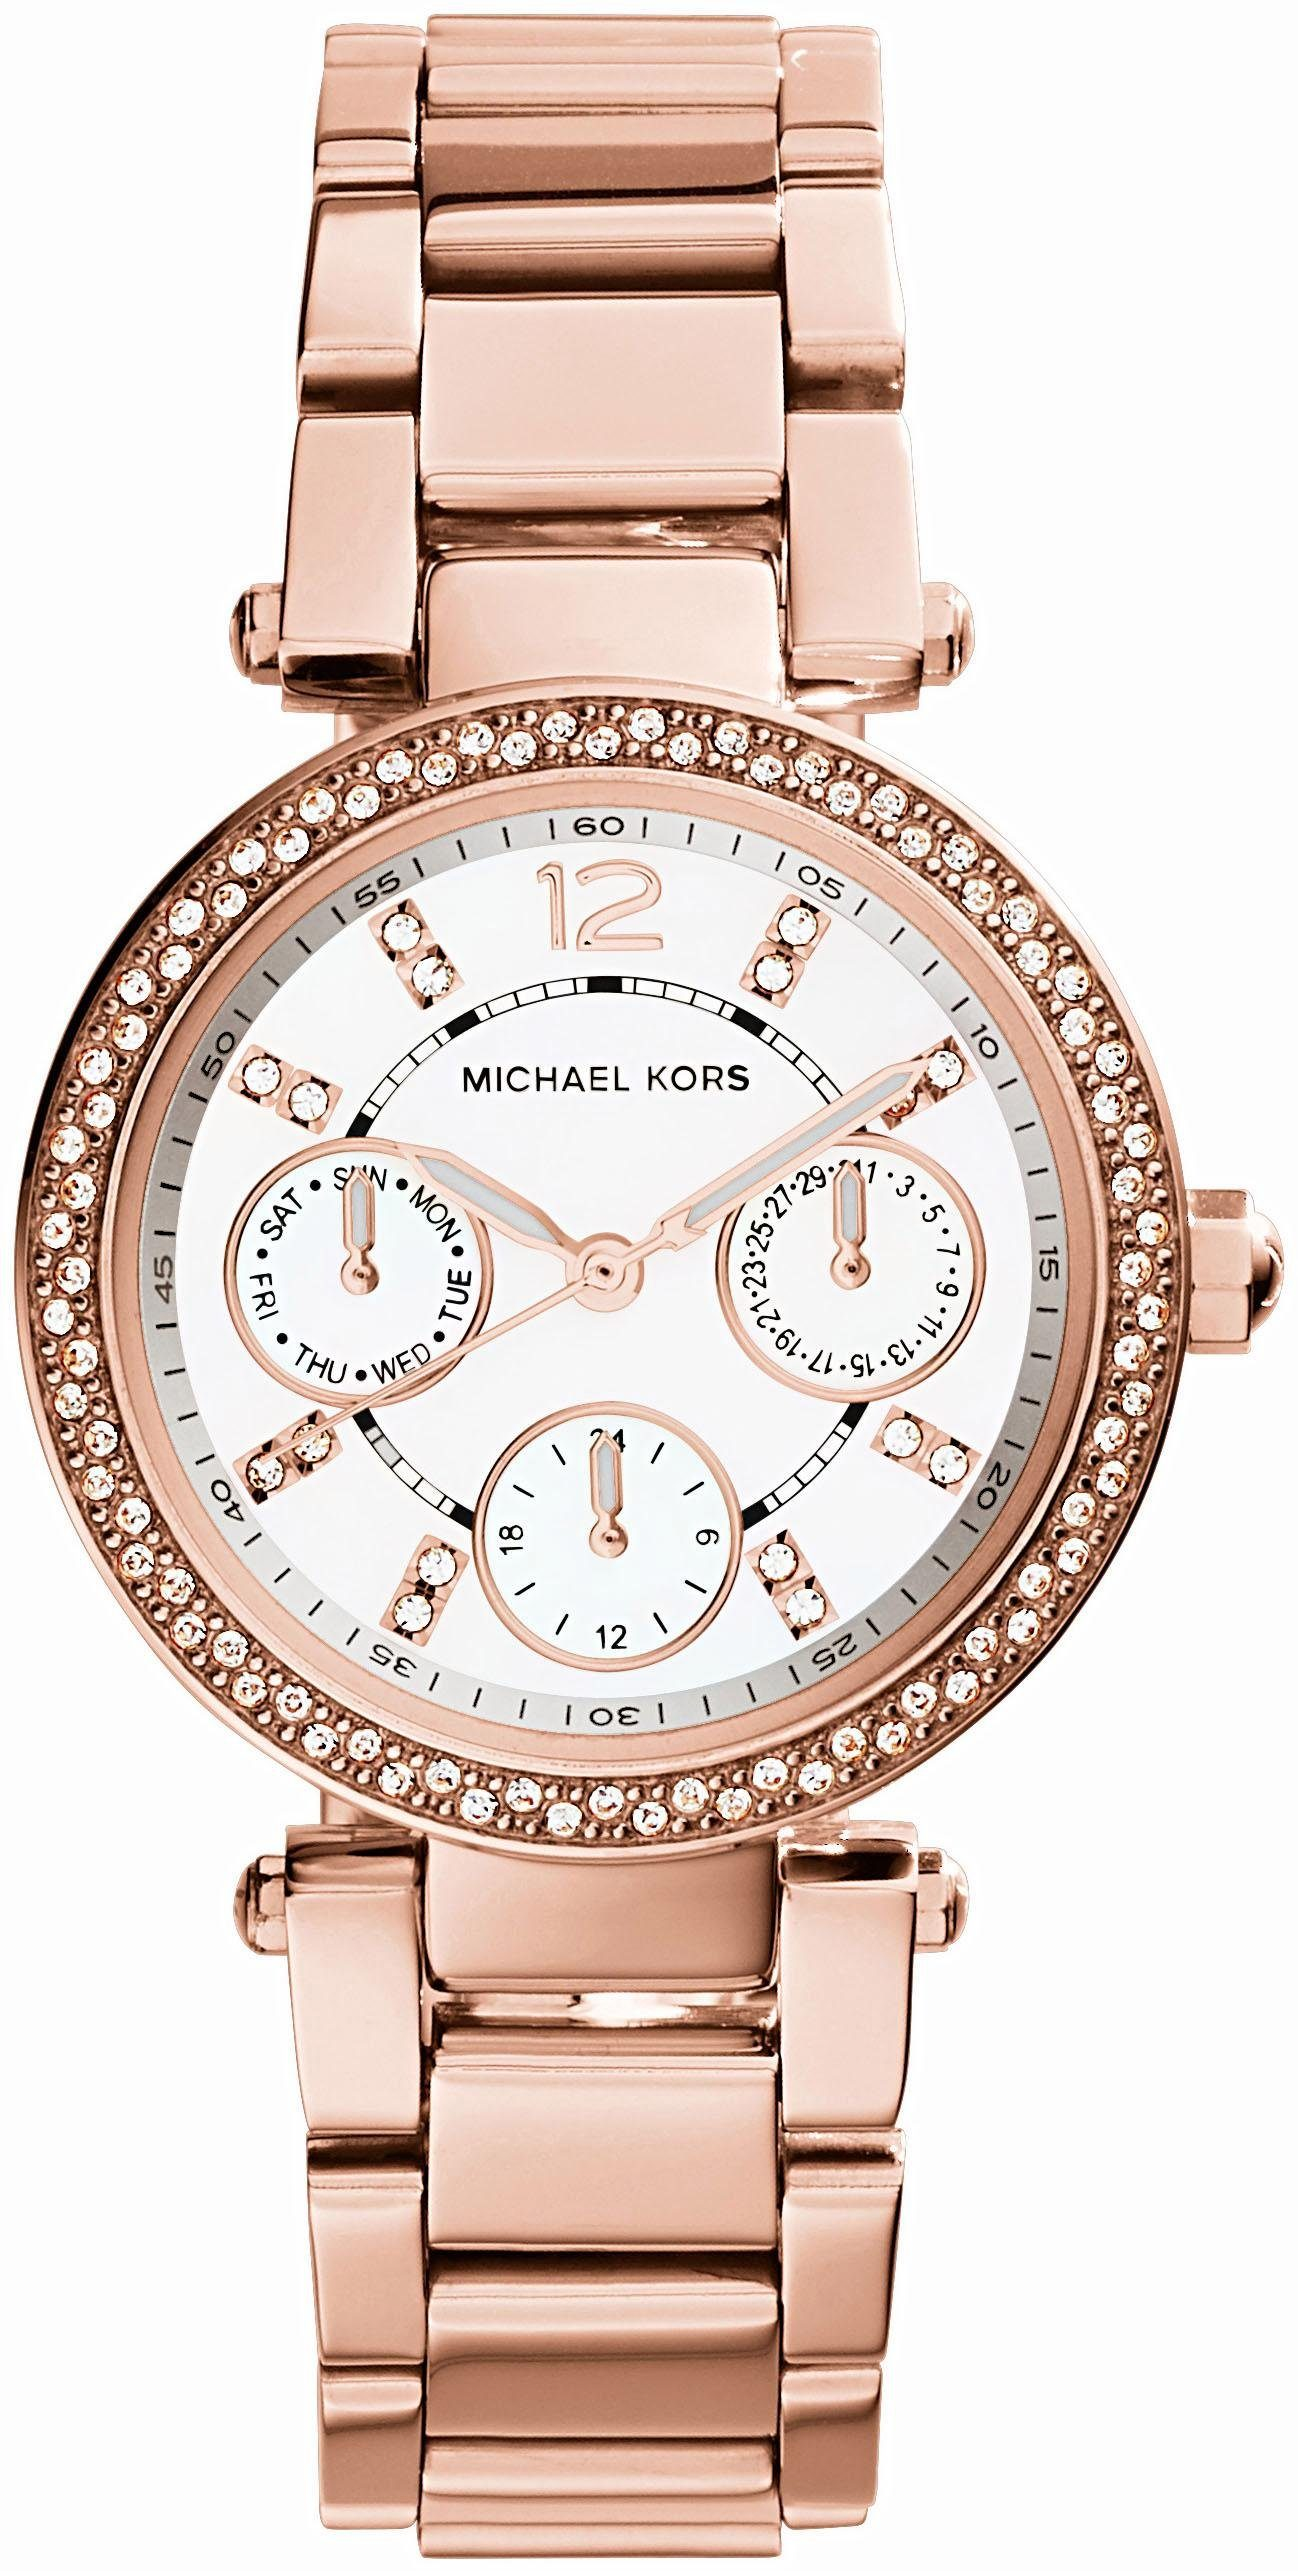 MICHAEL KORS Multifunktionsuhr »MINI PARKER, MK5616«